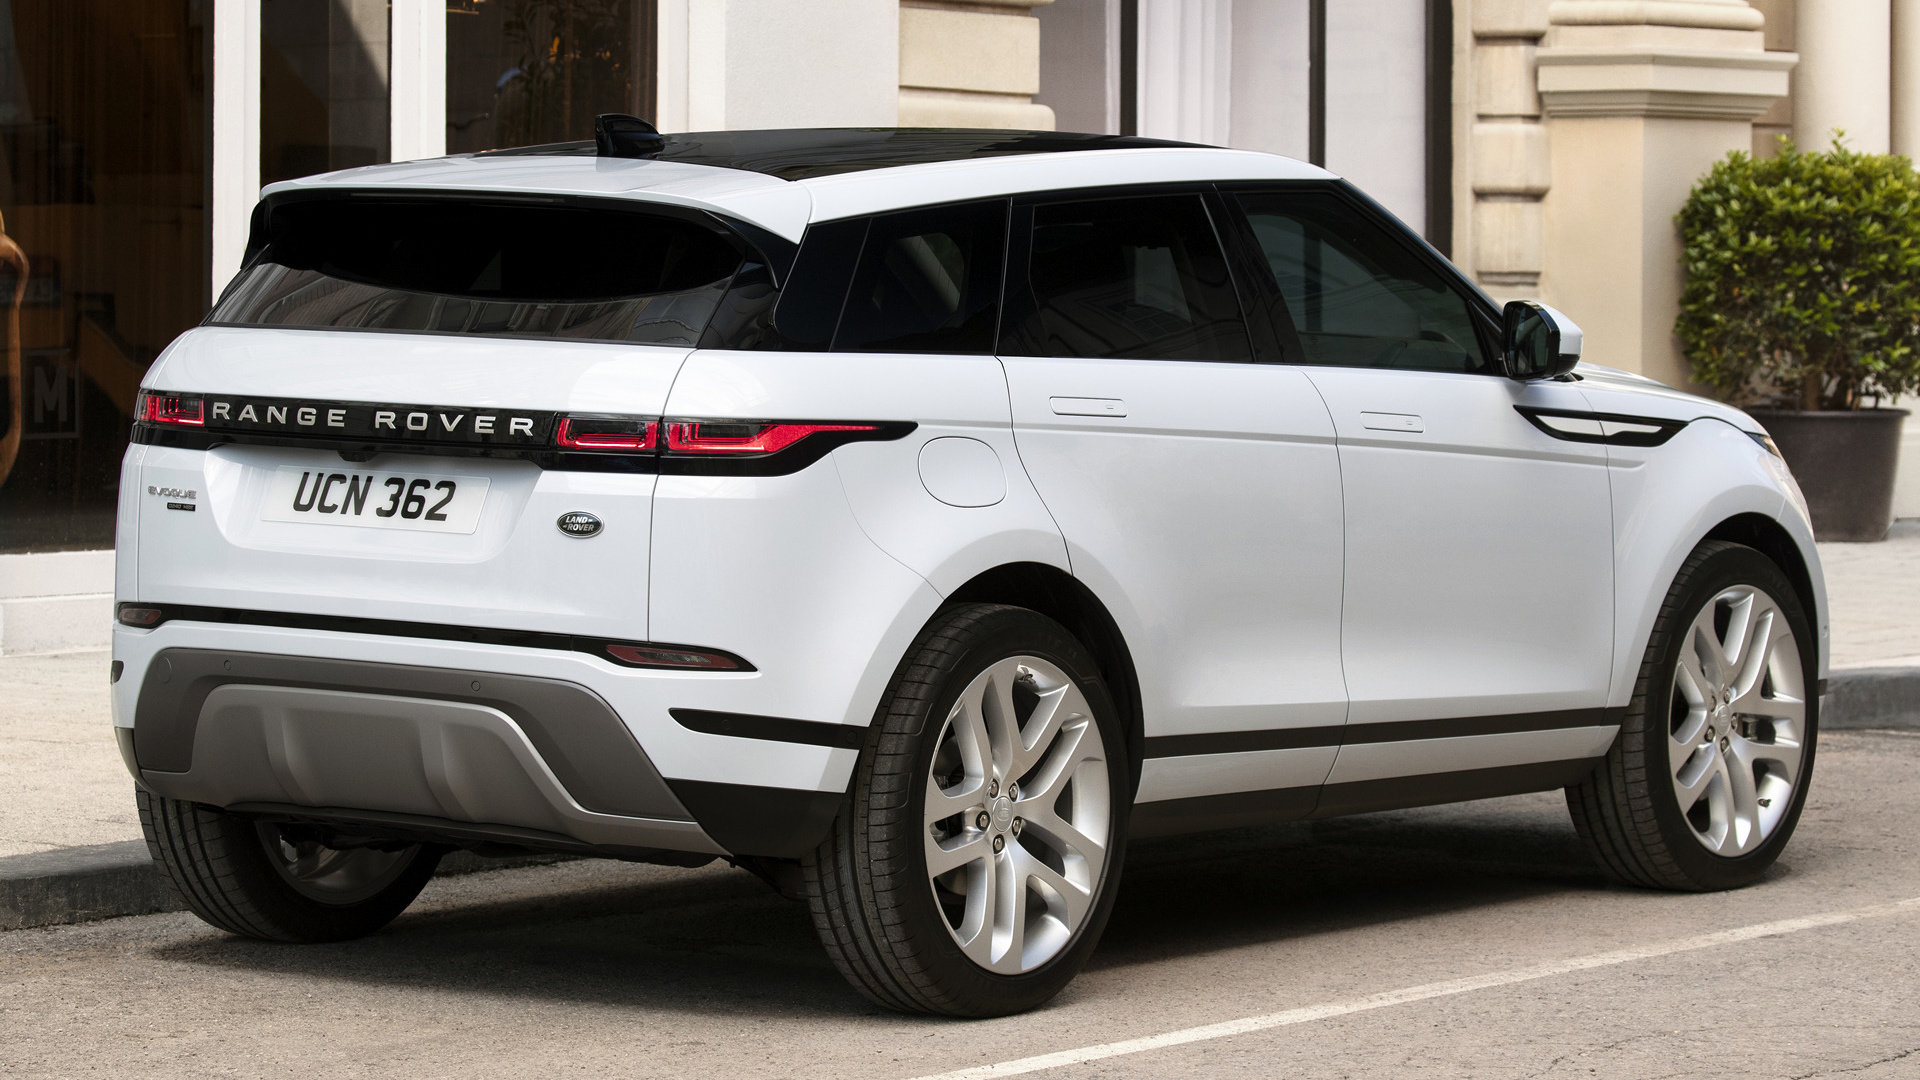 2019 Range Rover Evoque HD Wallpaper Background Image 1920x1080